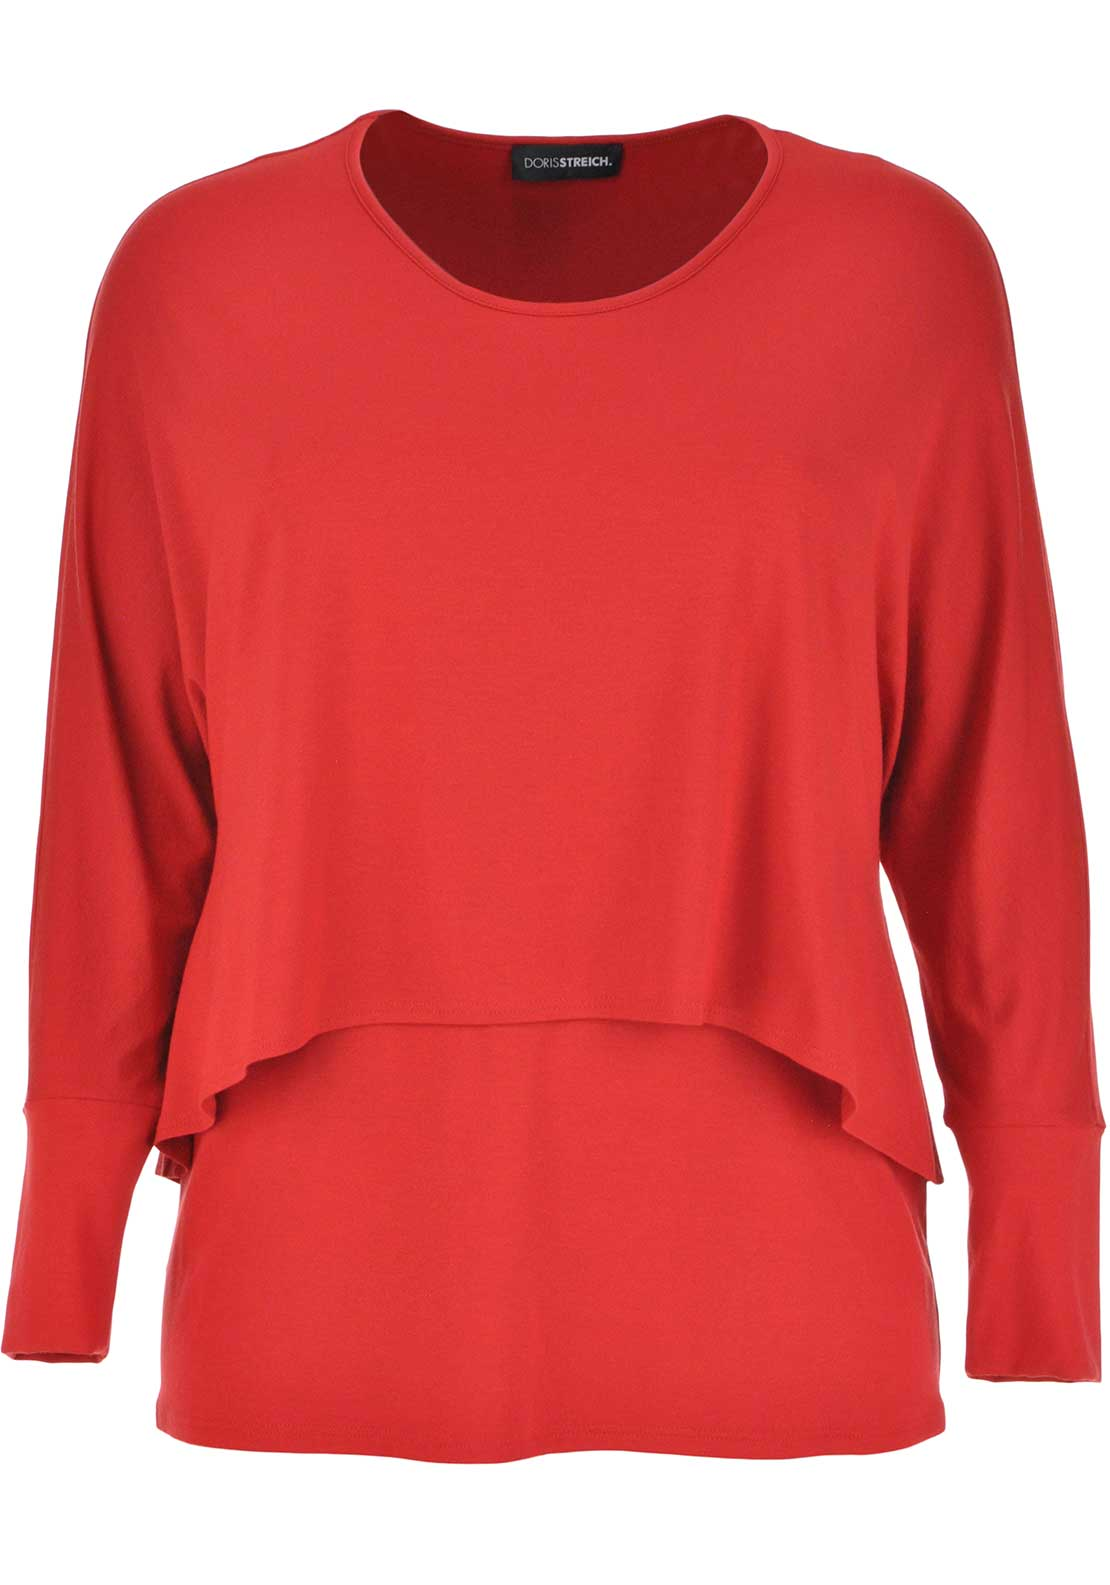 Doris Streich Double Layer Cropped Sleeve Top, Red